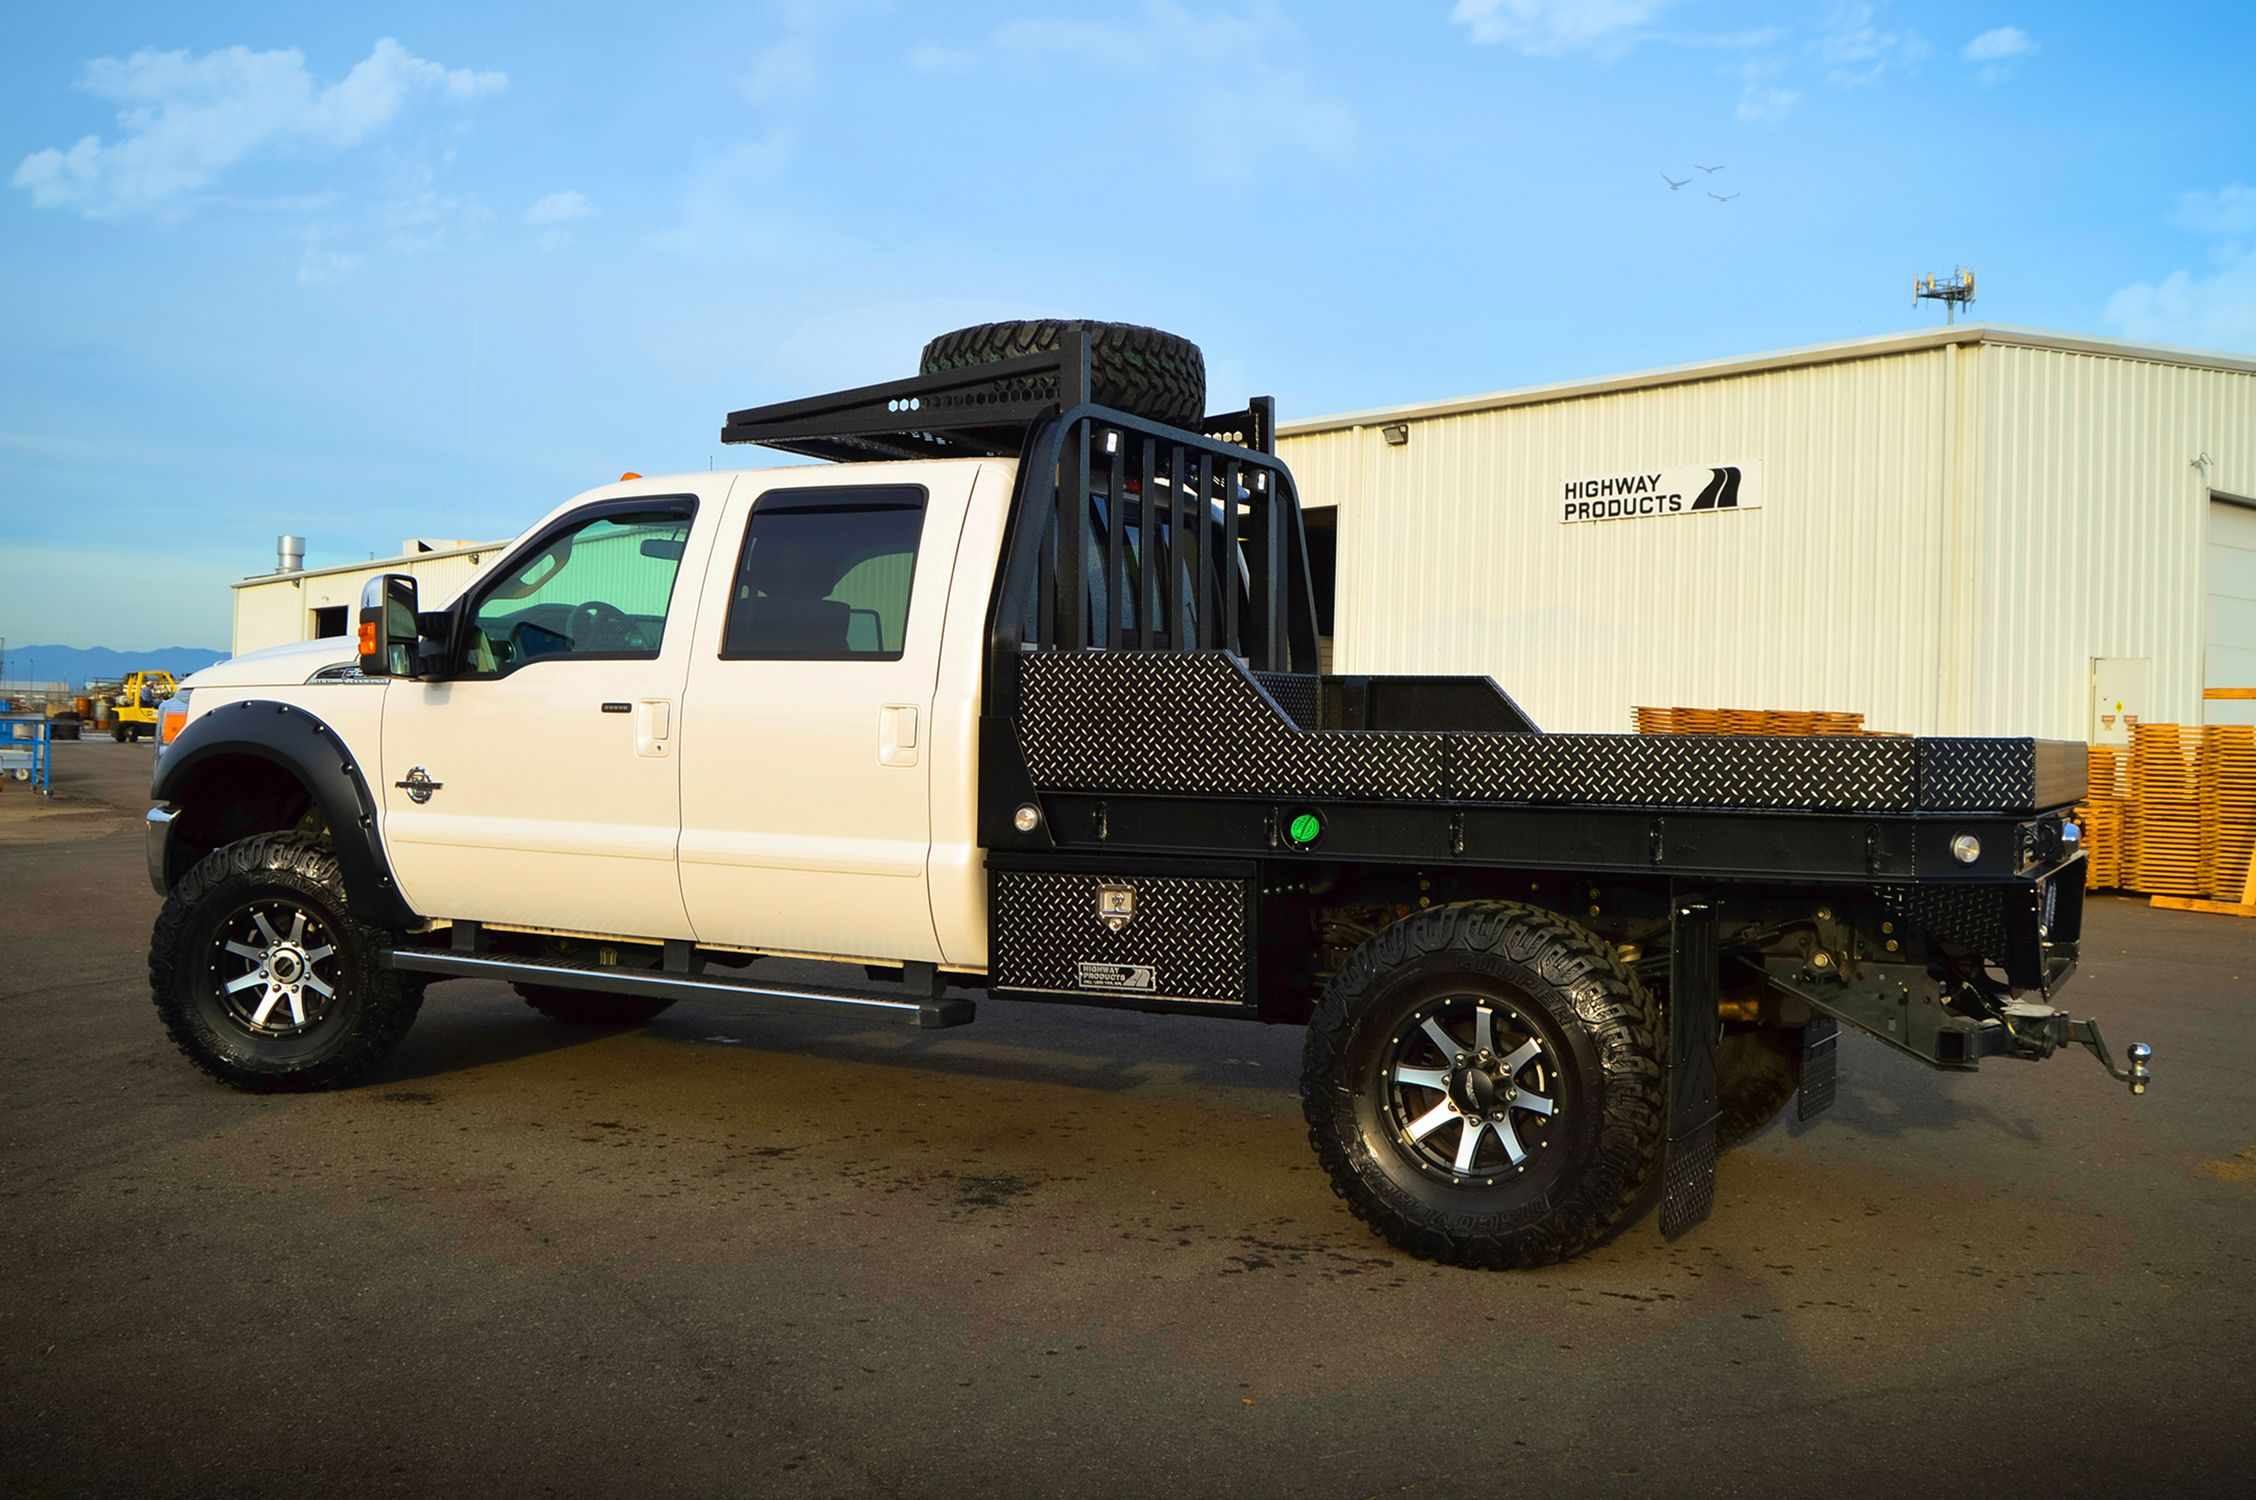 2015 ford f350 aluminum flatbed in leopard style hpi black w shaved diamonds with matching. Black Bedroom Furniture Sets. Home Design Ideas